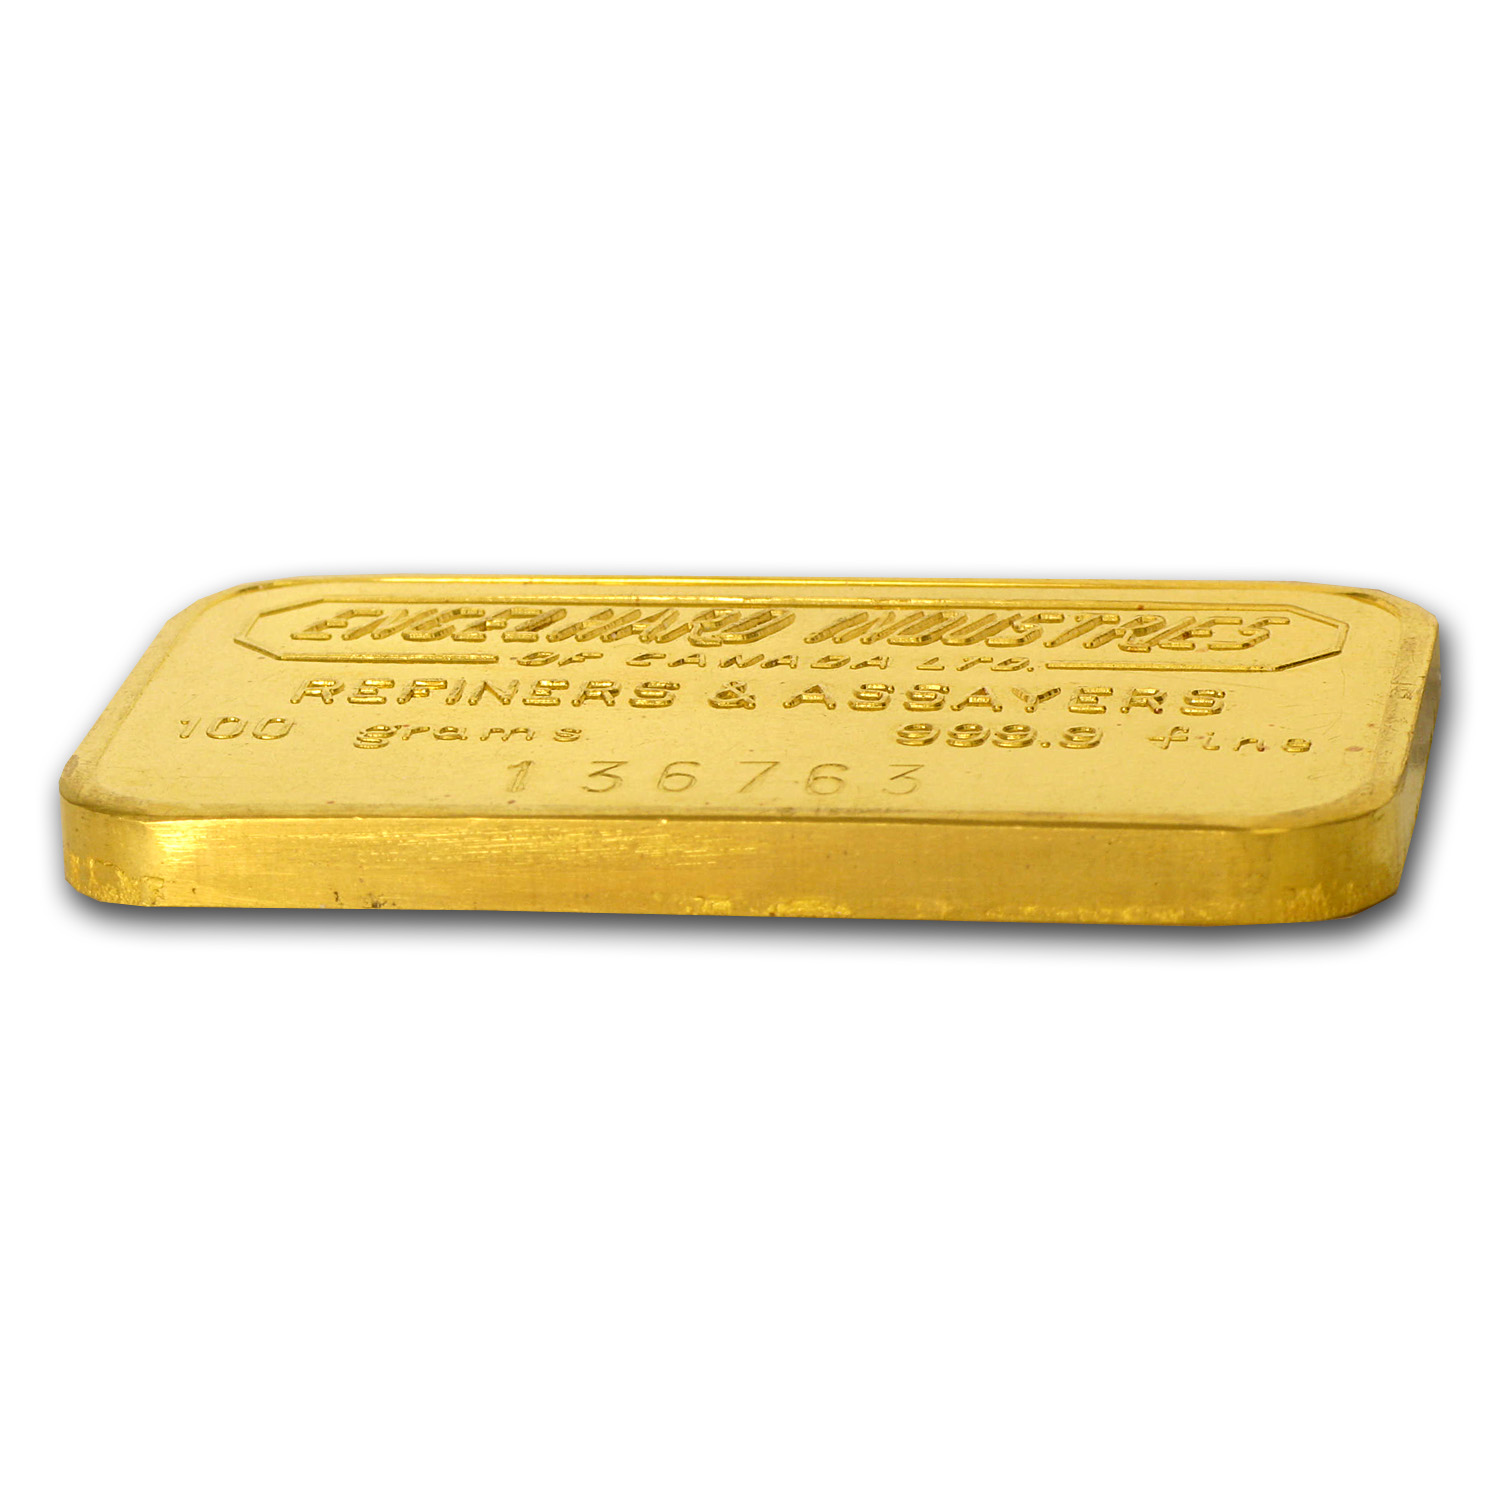 100 gram Gold Bar - Engelhard Industries of Canada